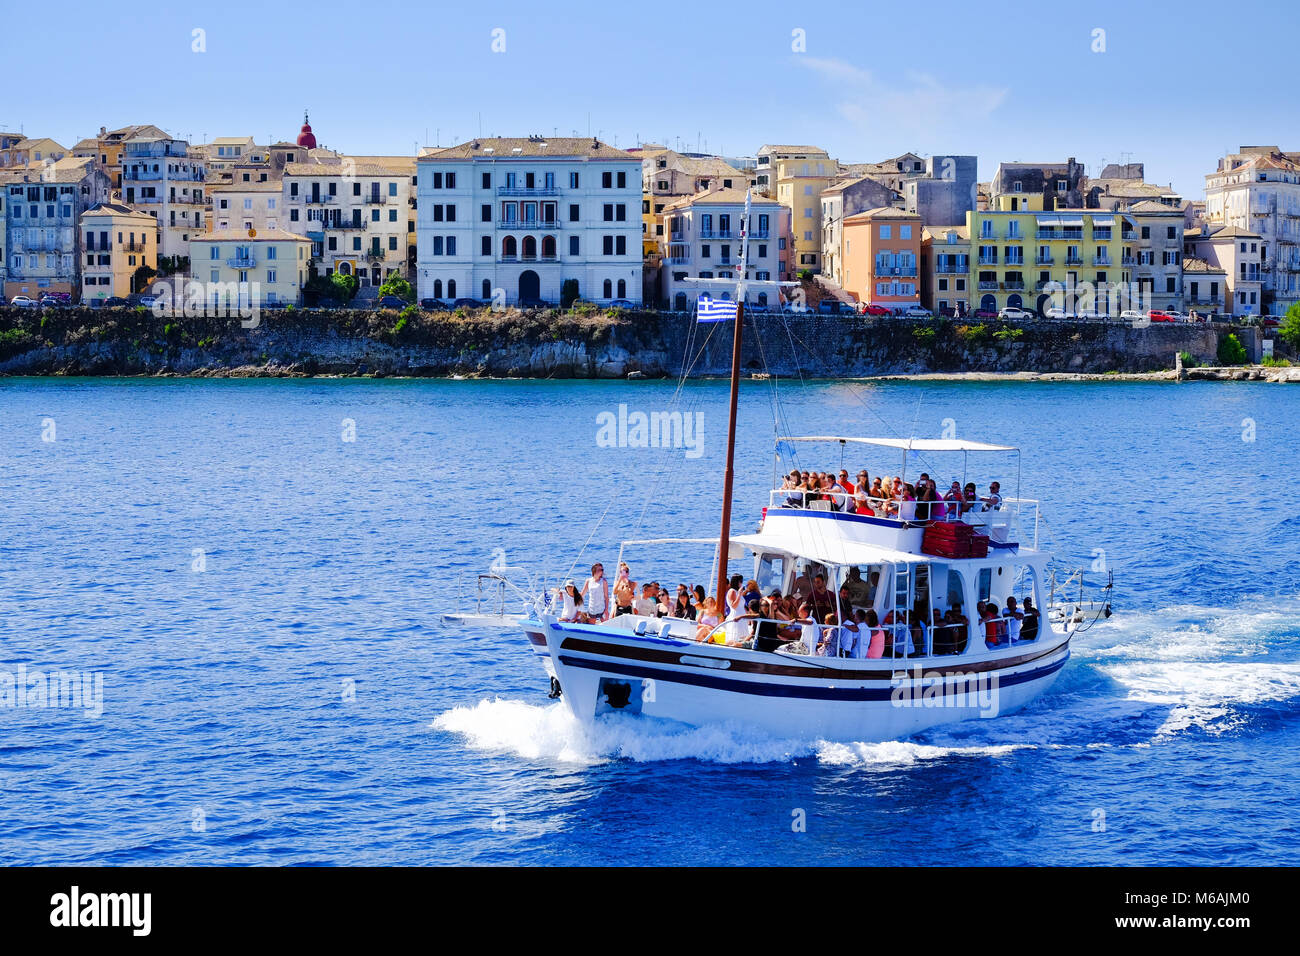 Boat sailing in daily trips around Corfu island with the old city in the background. - Stock Image